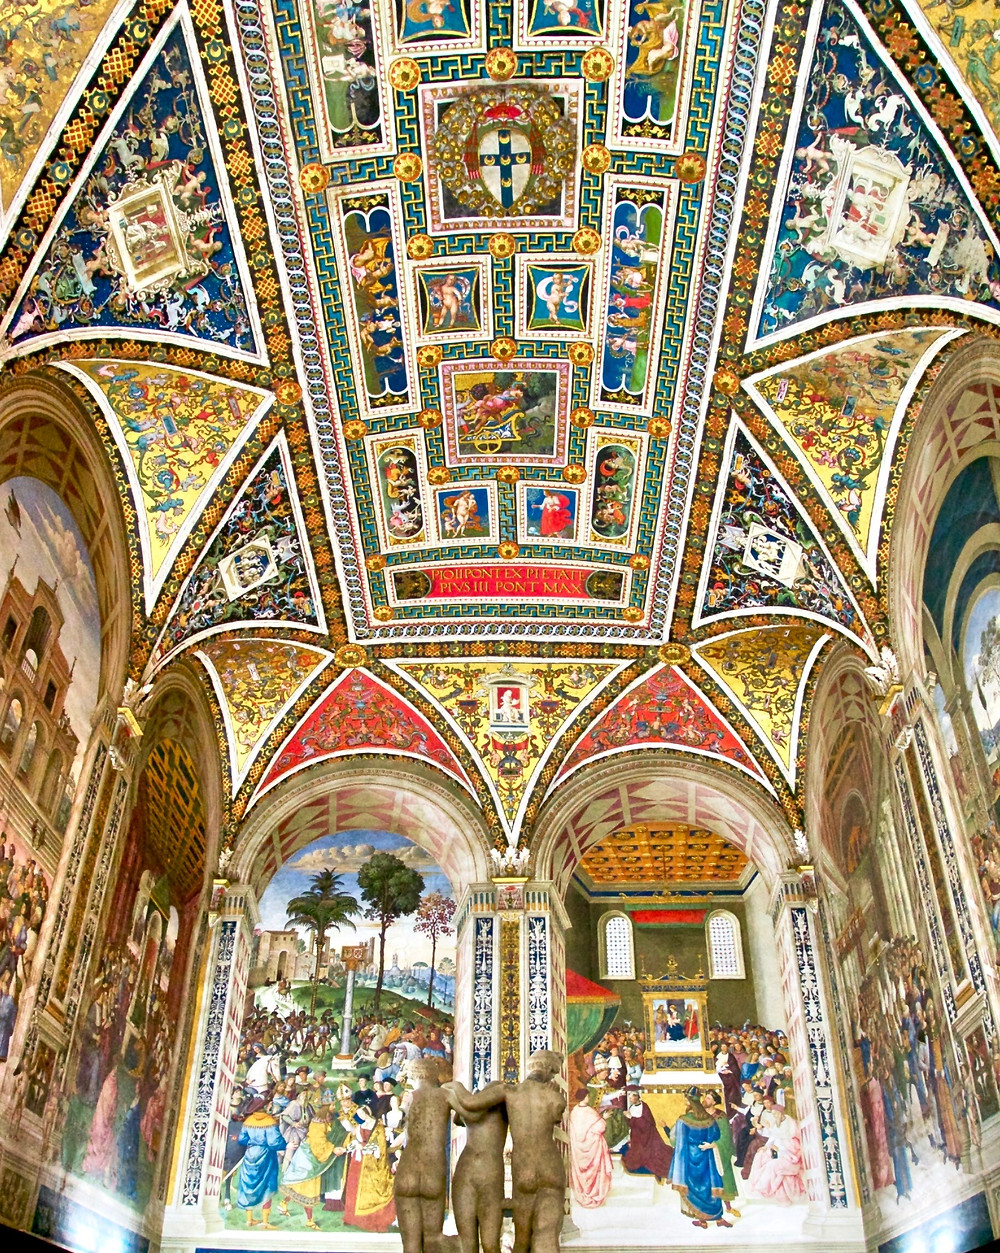 frescos in the Piccolomini Library inside Siena Cathedral